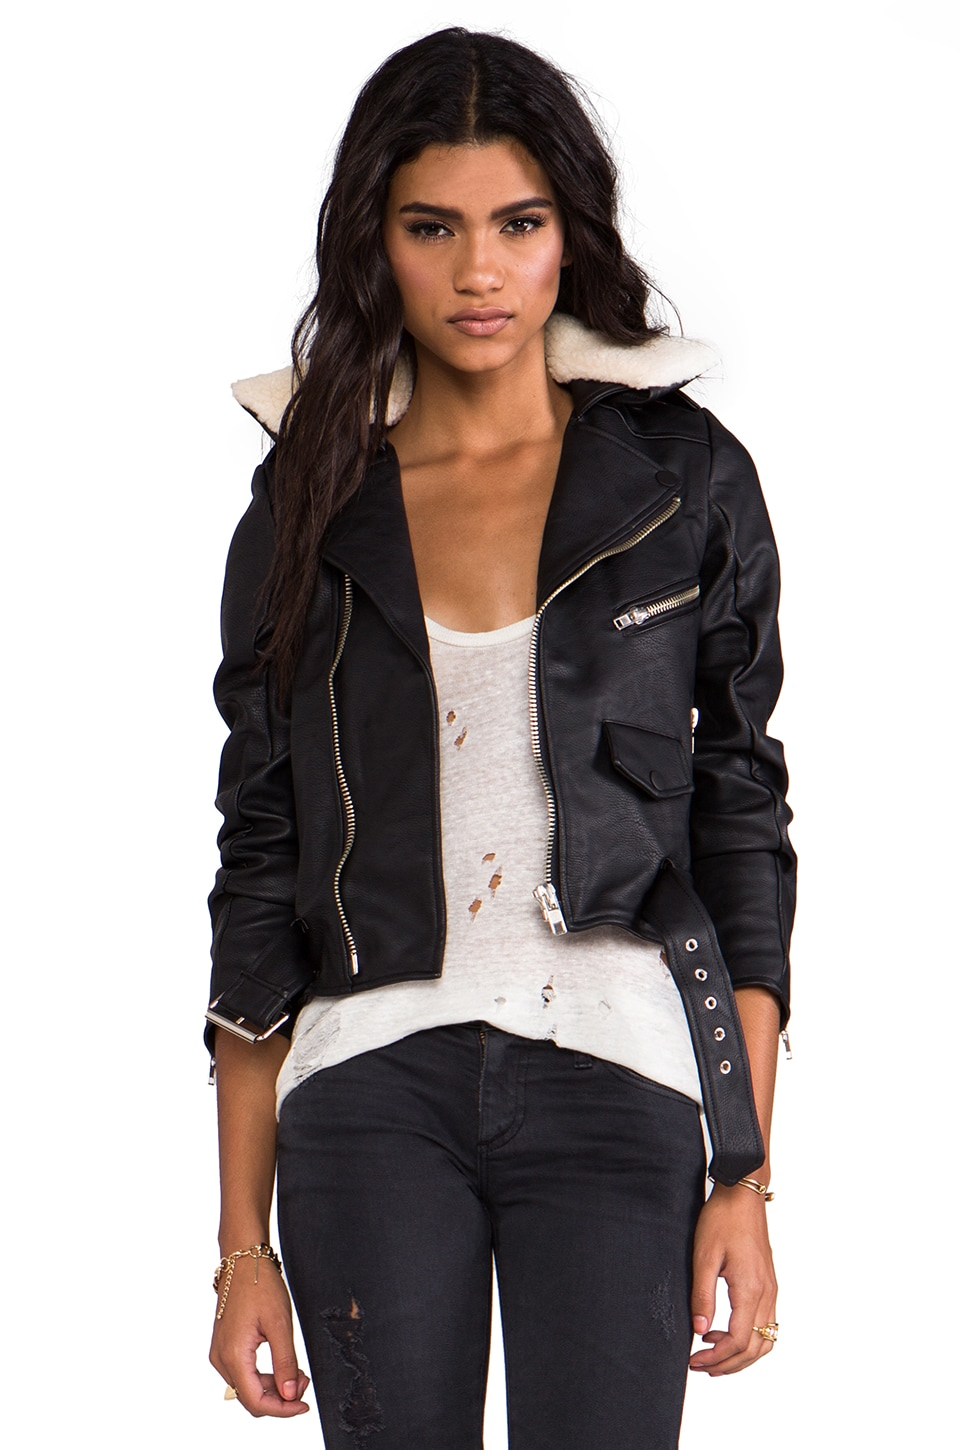 UNIF Avihater Jacket w/ Cream and Black Faux Fur Collar in Black